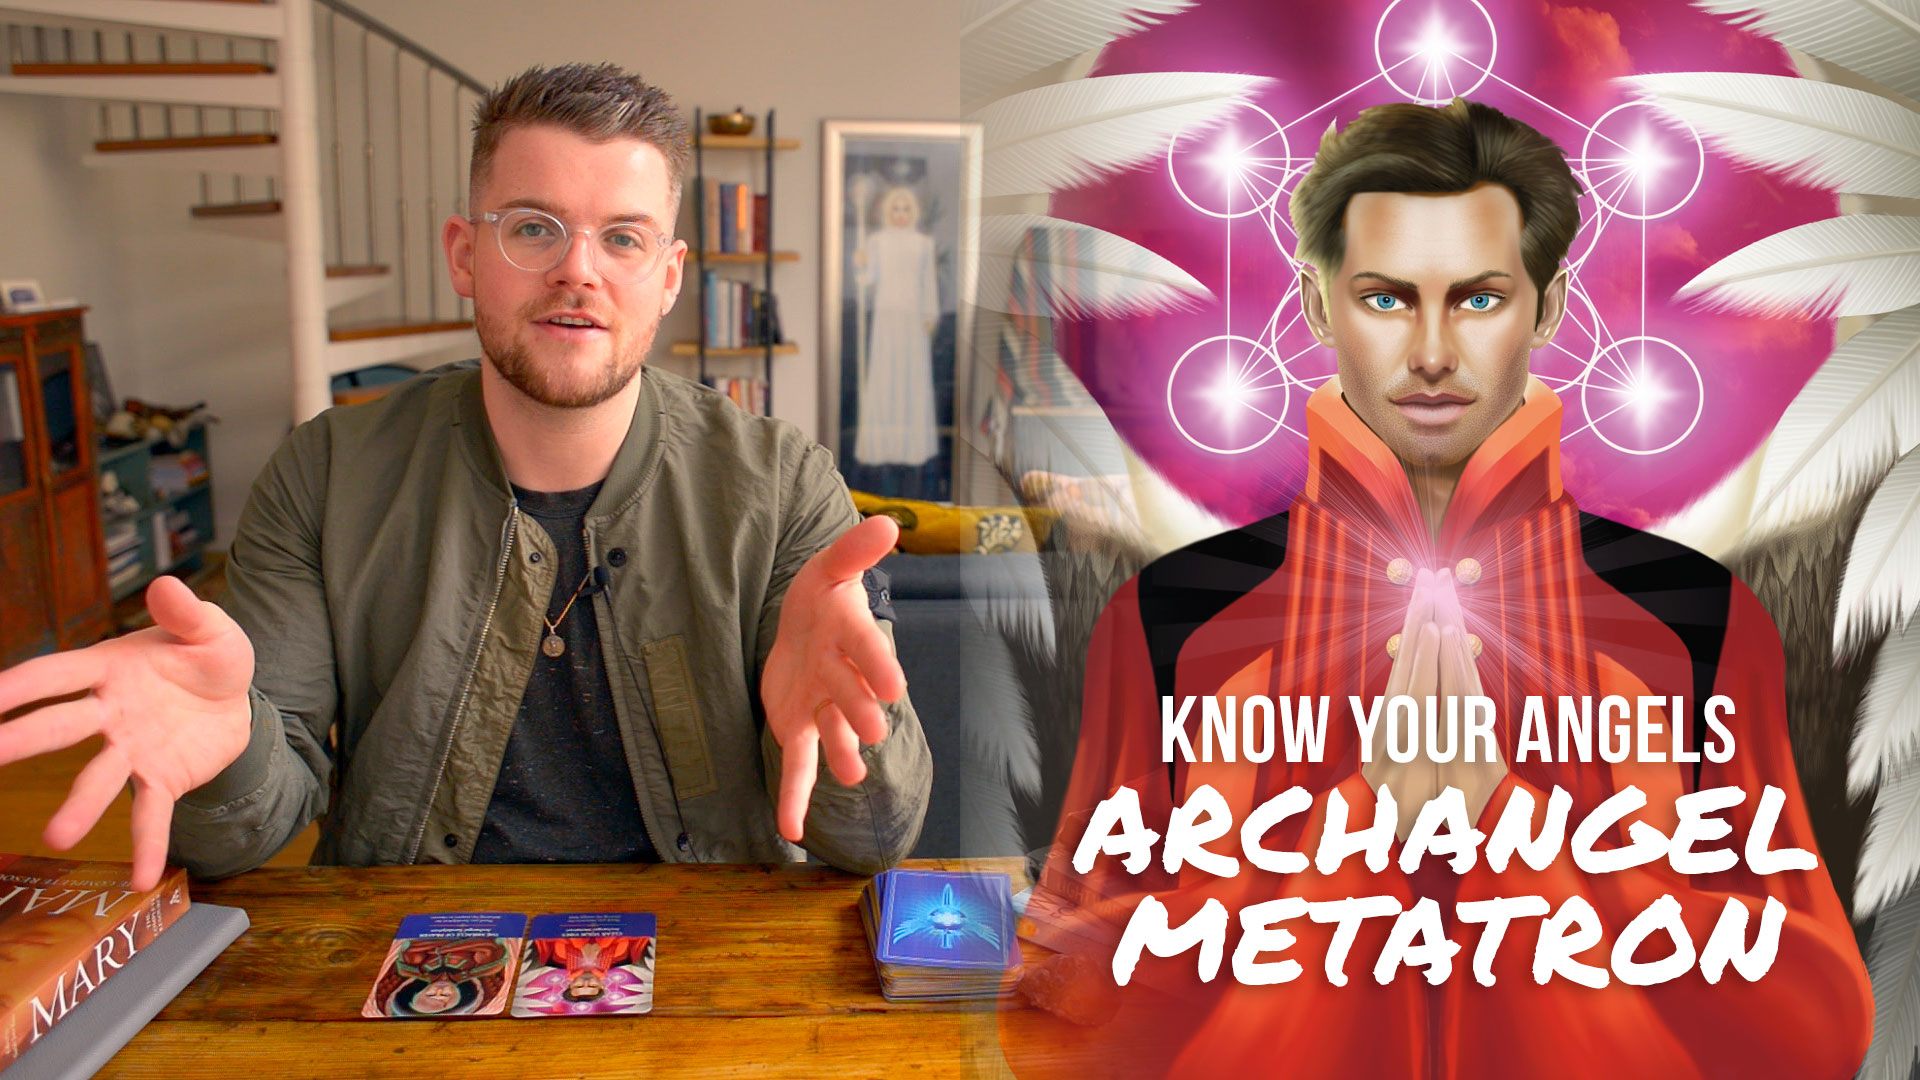 know_your_angels_thumbnail_METATRON.jpg